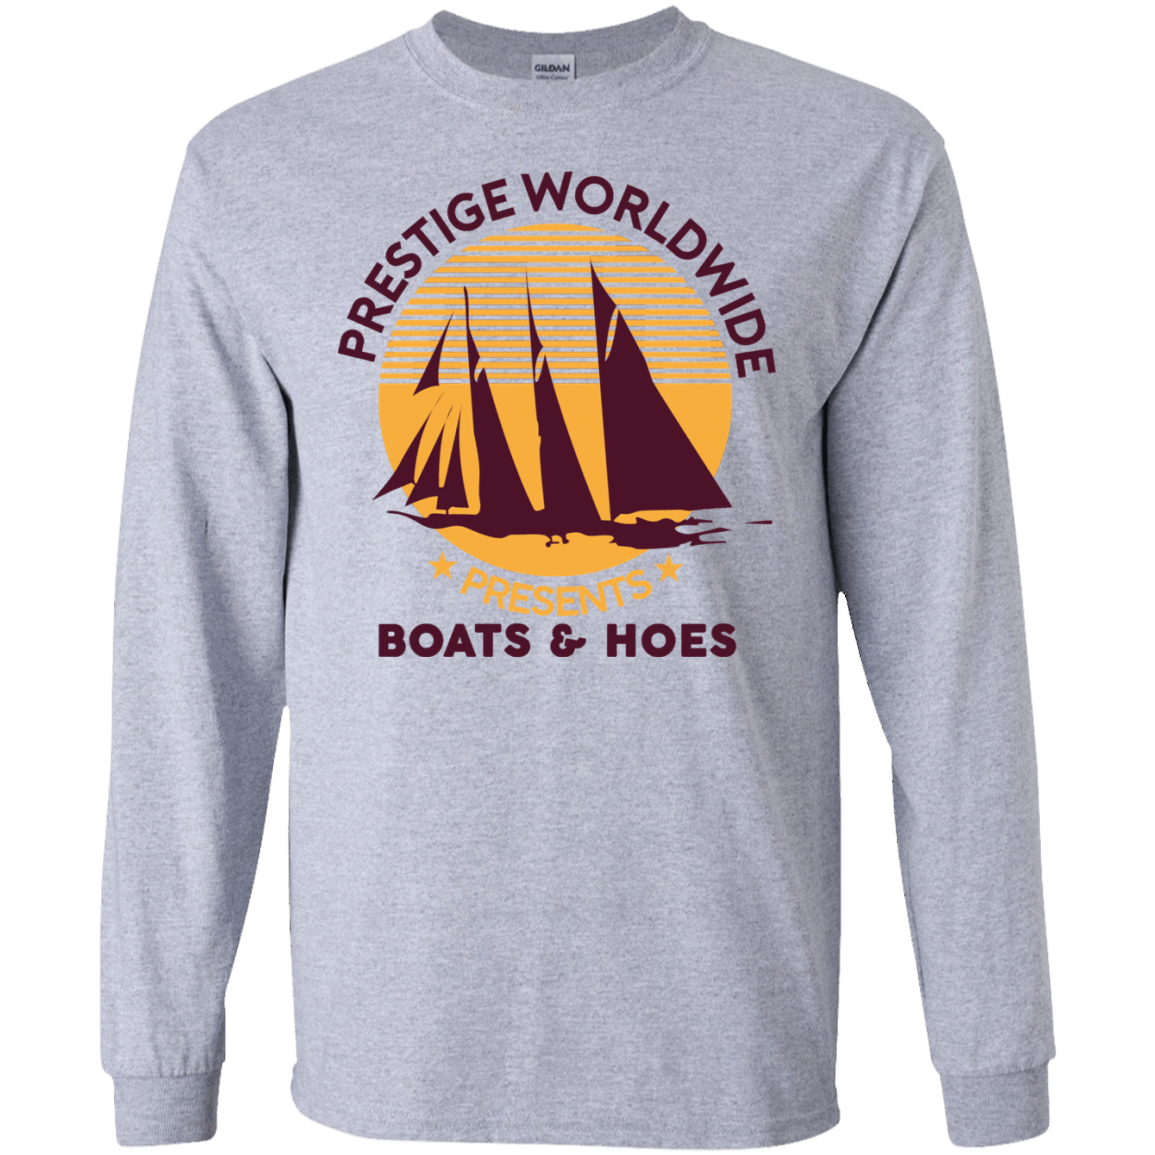 Prestige Worldwide Presents Boats & Hoes 30-188-72790289-335 - Tee Ript